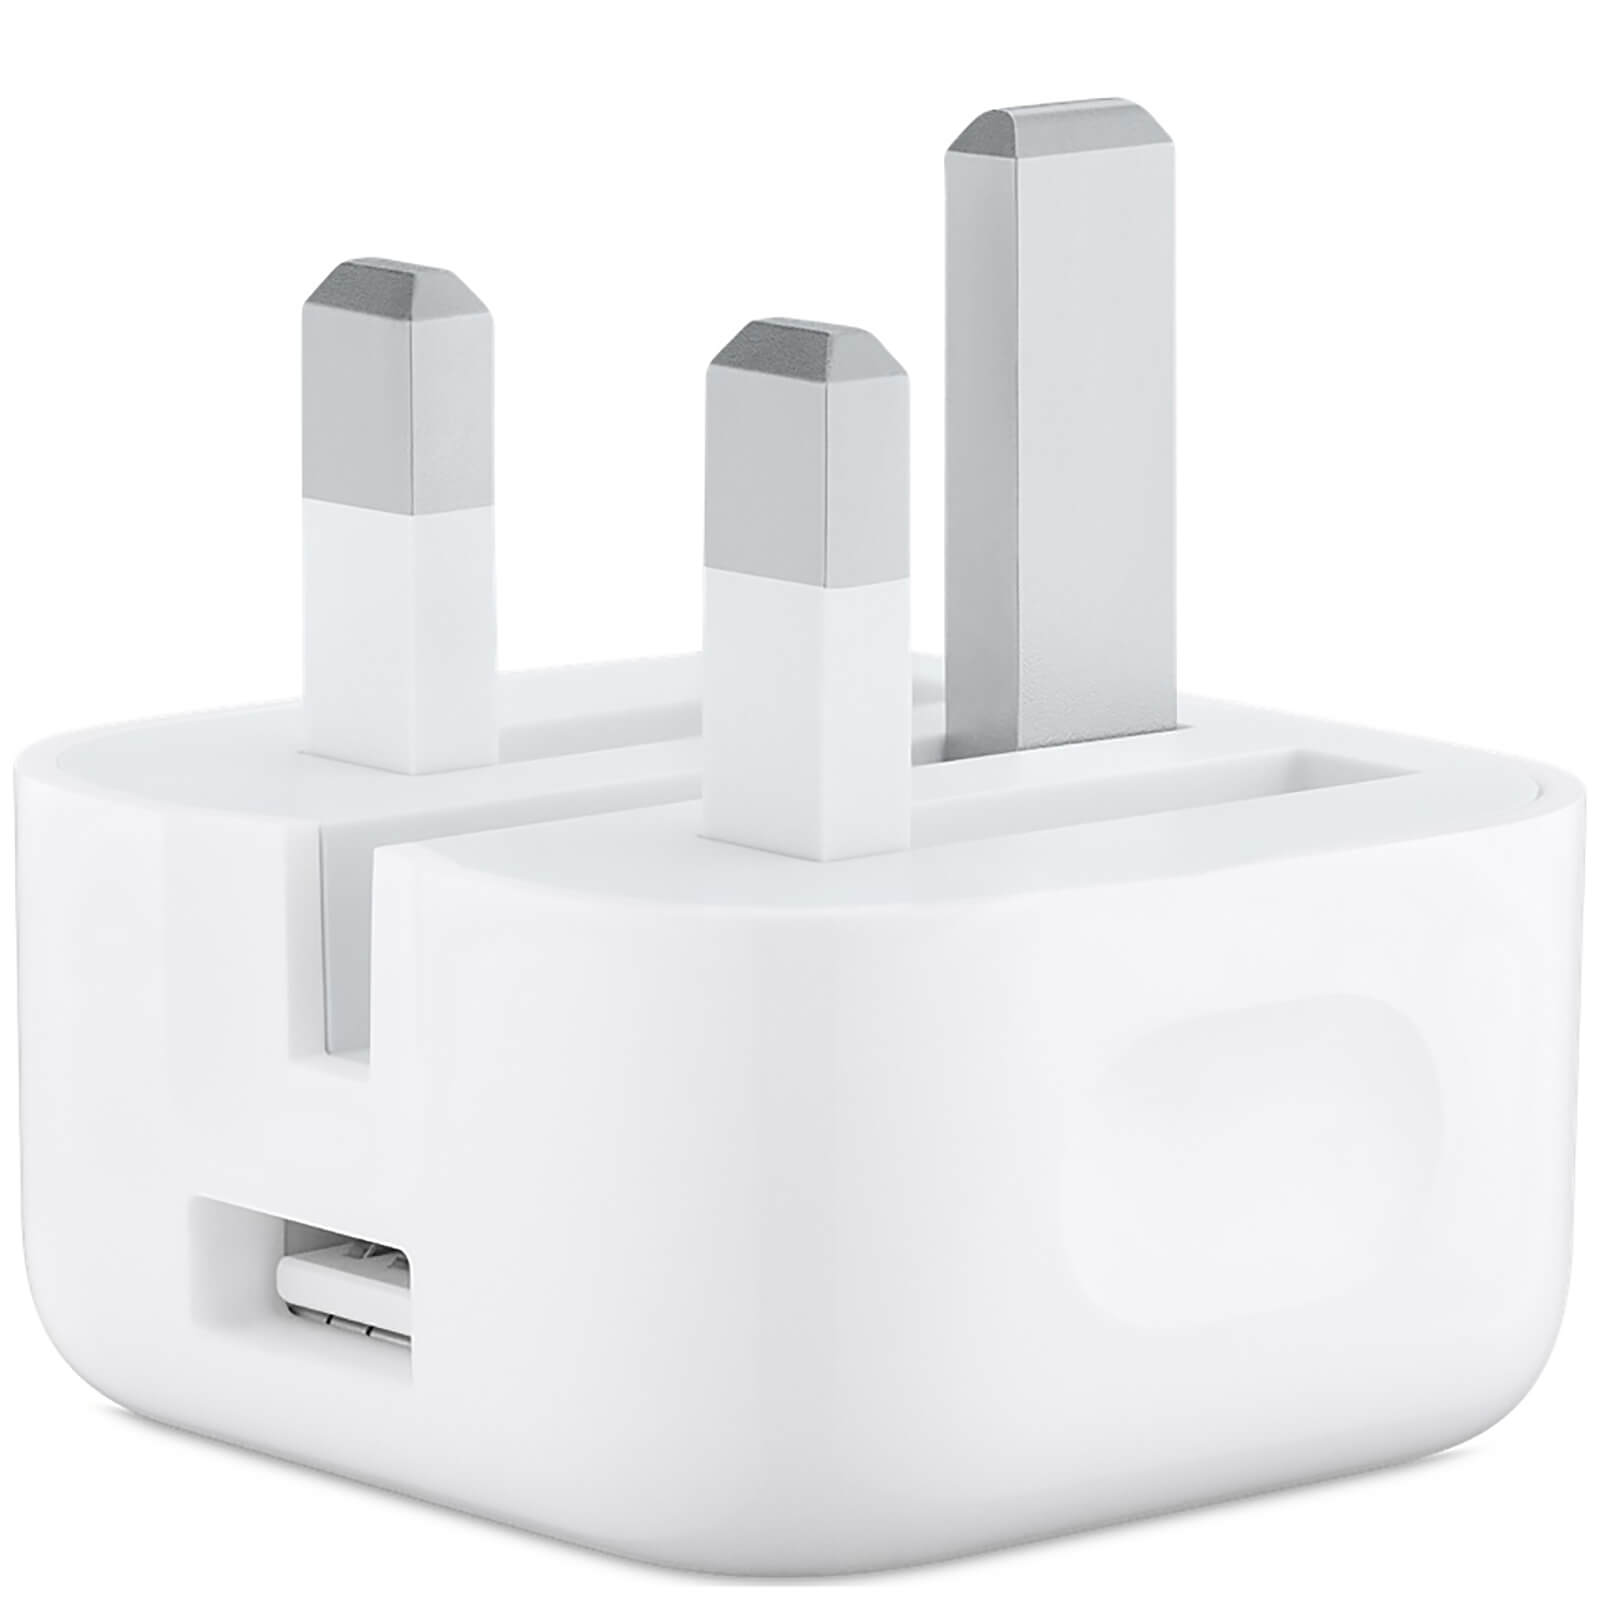 Apple 5W USB Power Adapter with Folding Pins